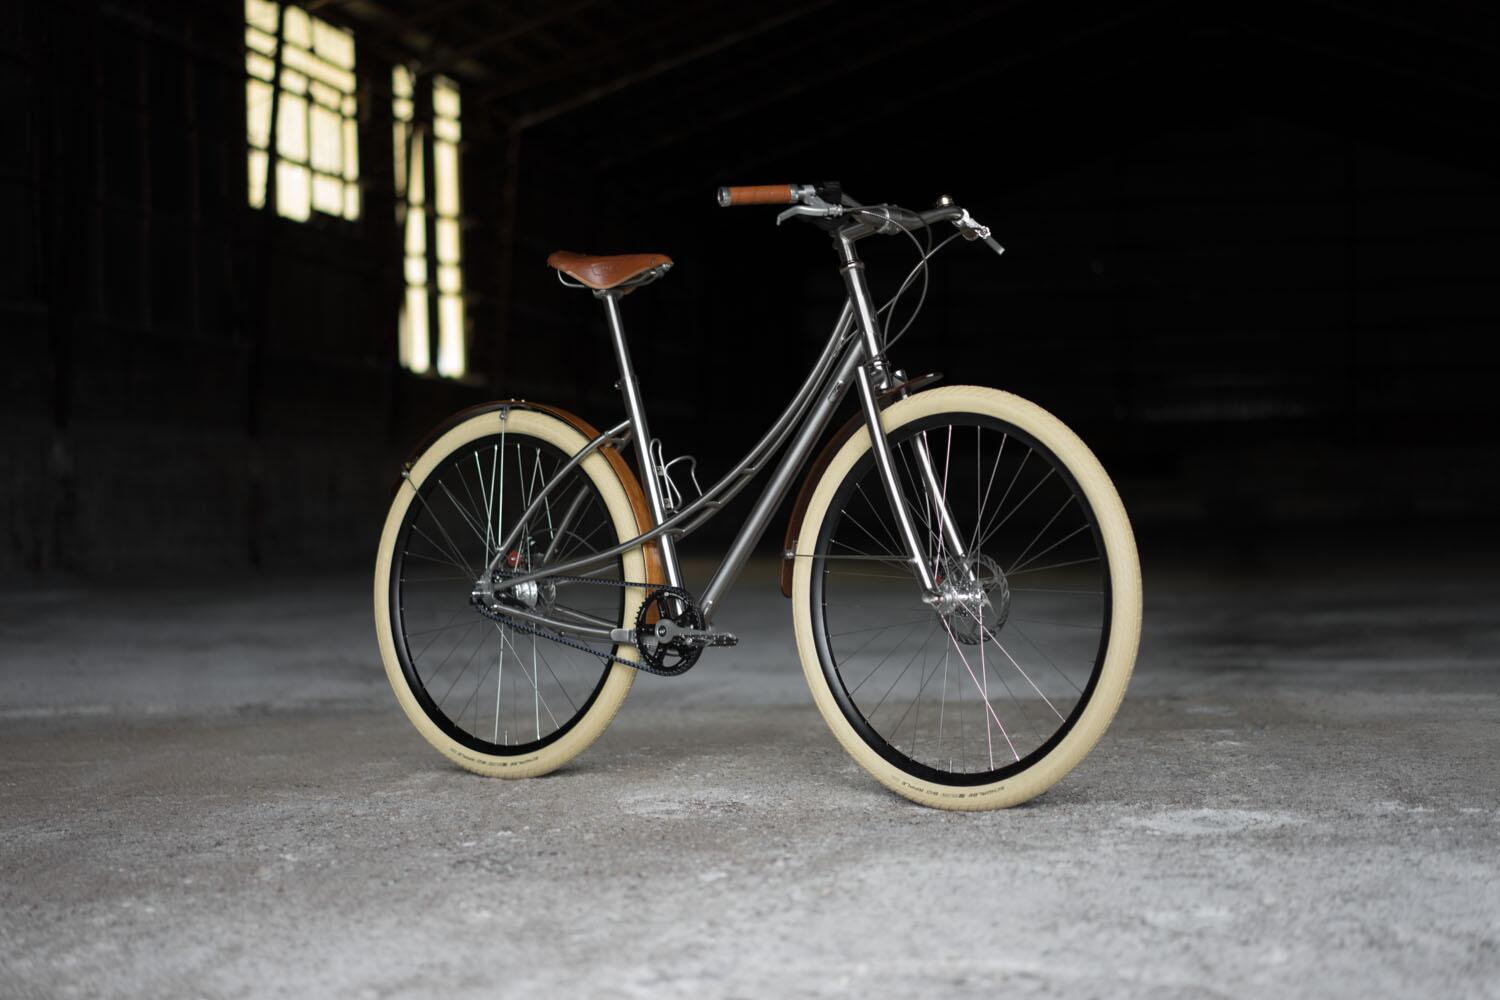 Hello Honey! A beautiful Ti Model No.5 with wooden fenders & honey leather accents. #beautifulbicycle http://t.co/WhmCnA4Ear